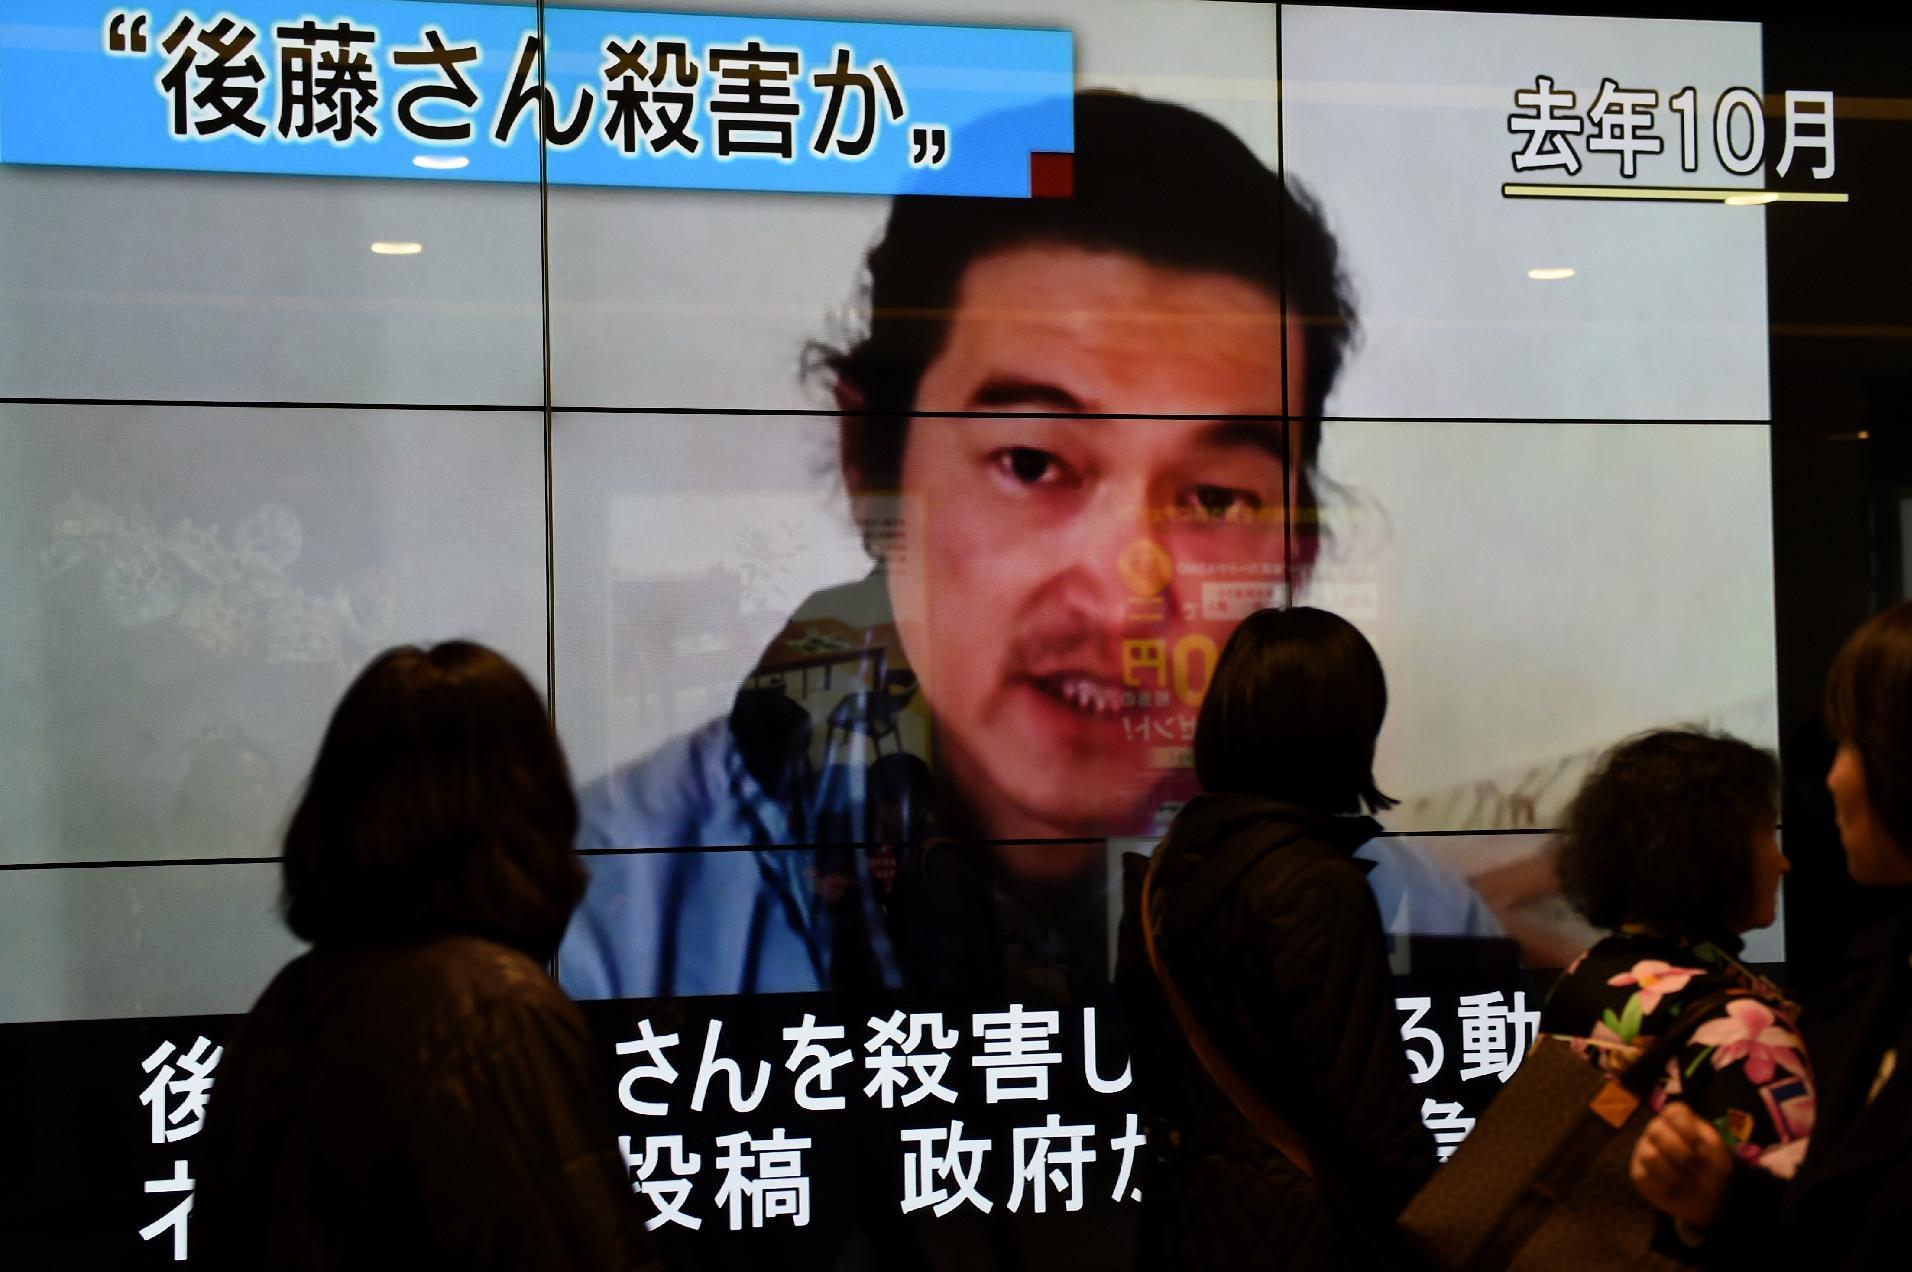 Japan condemns 'despicable' IS hostage beheading claim